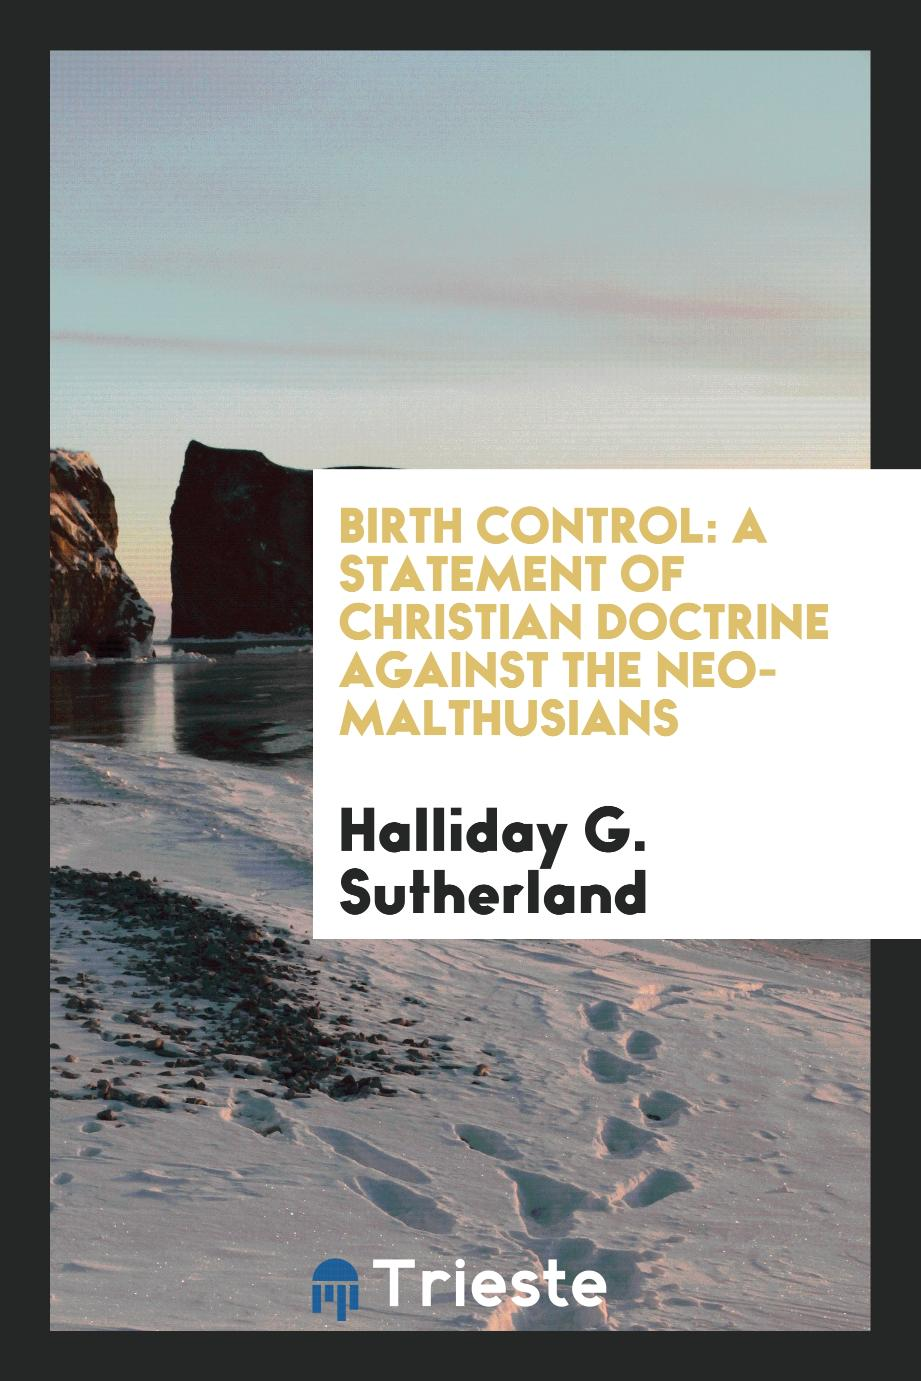 Birth Control: A Statement of Christian Doctrine against the Neo-Malthusians